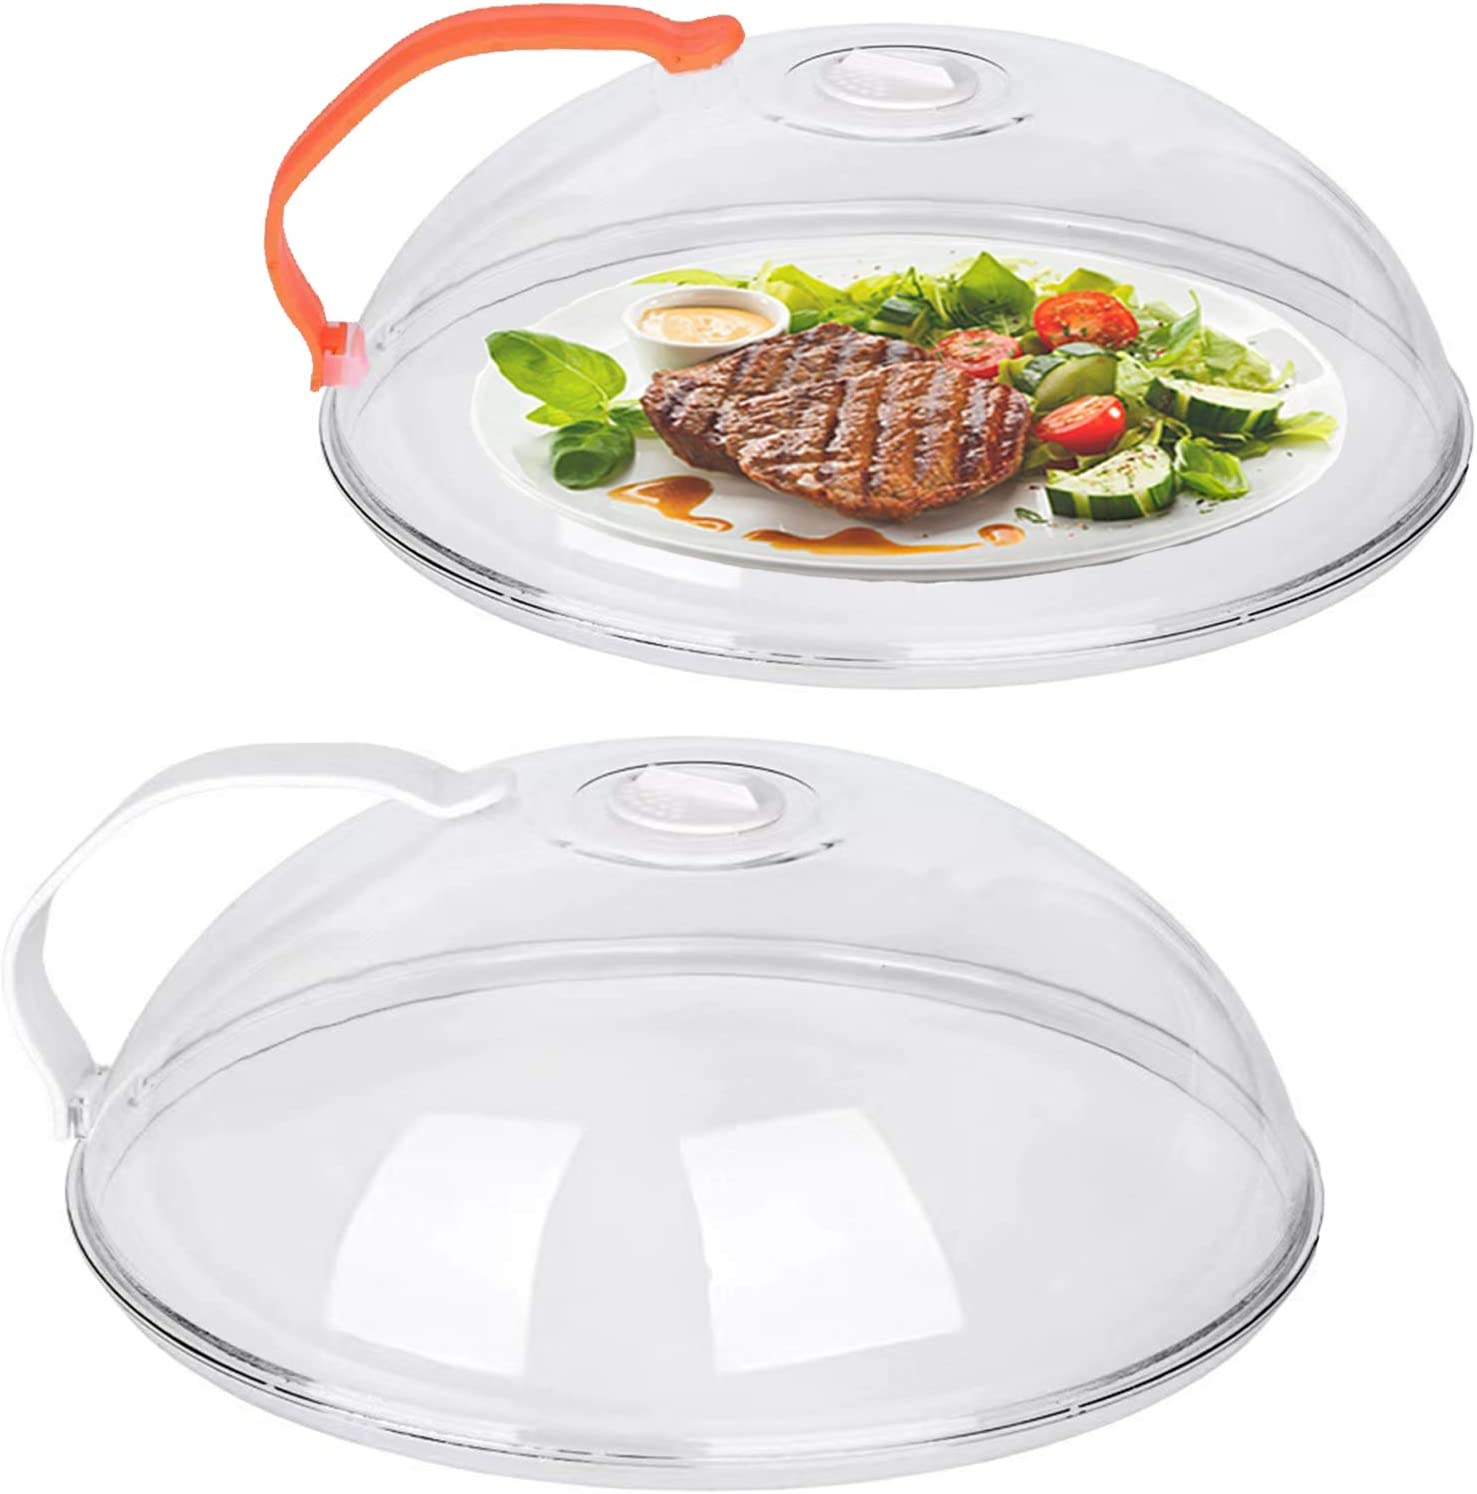 2 Pack Microwave Plate Cover, Transparent Microwave Splatter Cover XL, Microwave Food Cover Microwave Splatter Guard Lid Anti-Splatter with Steam Vents Handle Keeps Microwave Oven Clean